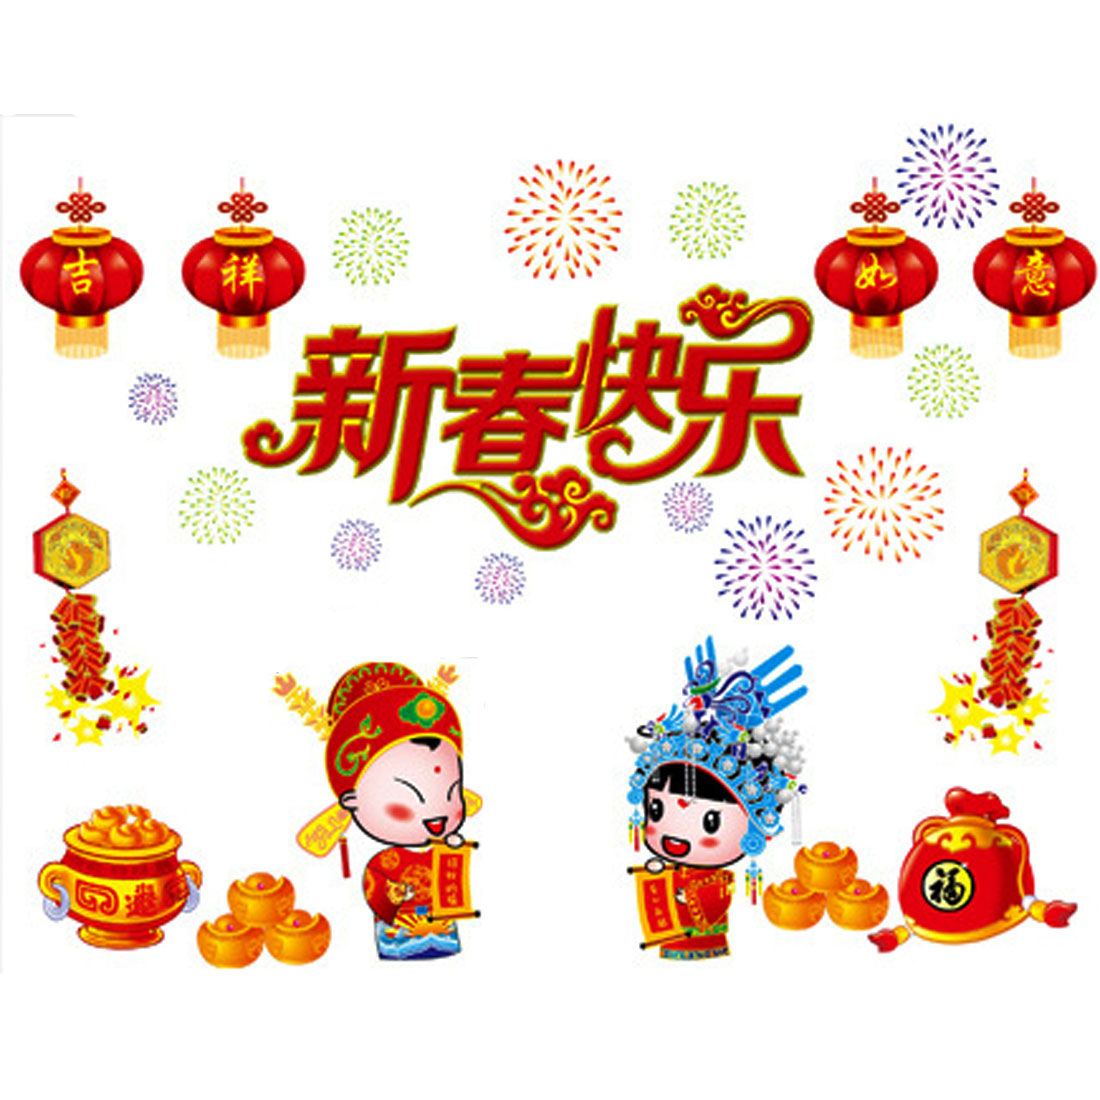 New Year Pattern Self-adhesive Removable Wall Sticker Paper Mural Ornament